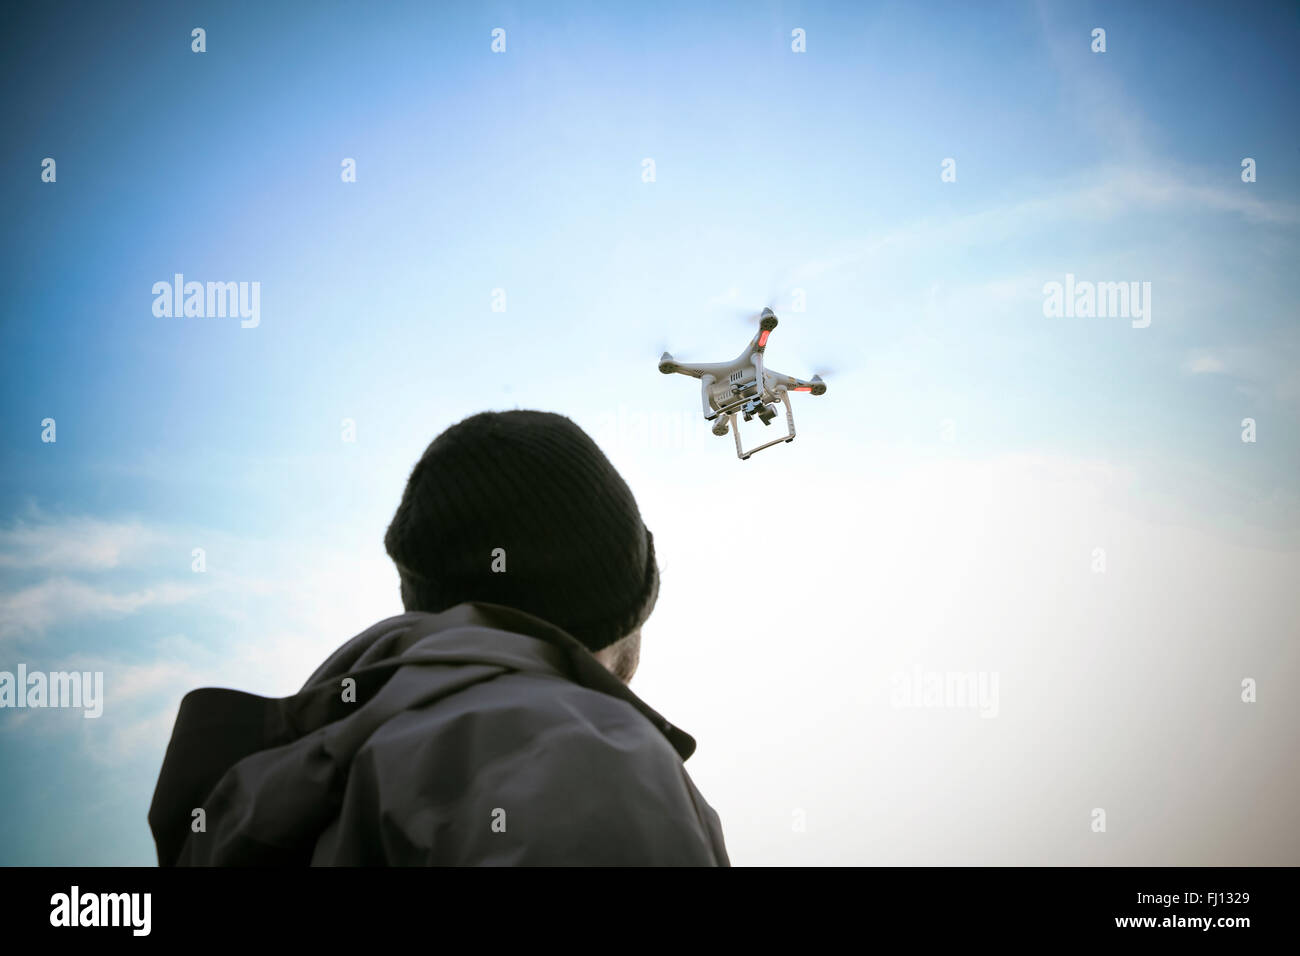 Back view of man flying drone - Stock Image